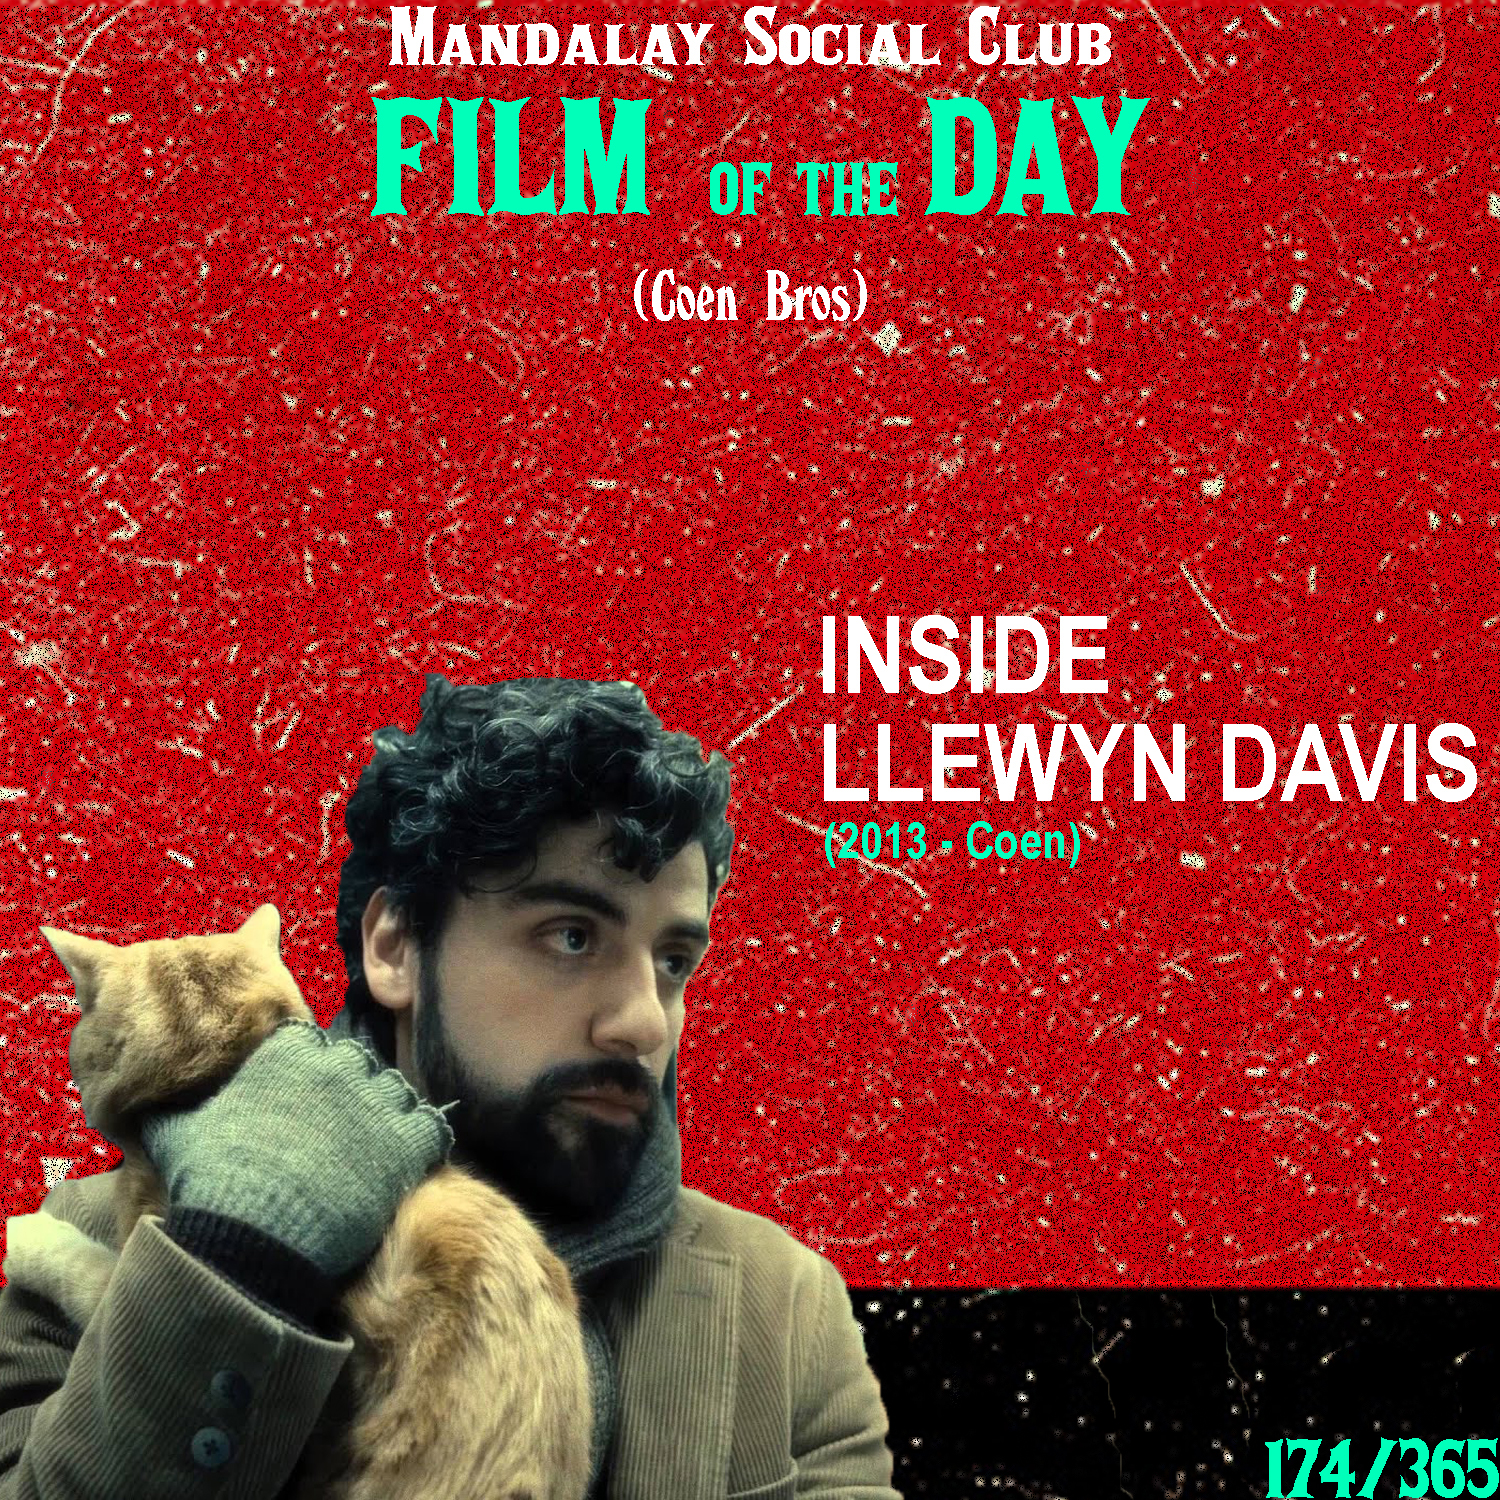 INSIDE LLEWYN DAVIS     (dir. Coen Brothers)   Inspired by the life of the influential folk singer Dave Van Ronk,  Inside Llewyn Davis  has not only been regarded as one of the best Coen Brothers films to date, but one of the best films of the 21st Century so far.  Oscar Isaac stars as Llewyn Davis, a struggling folk singer in 1960's Greenwich Village who attempts to make a name for himself and find success as a singer after his first album is a complete flop. Along the way, Llewyn must deal with a myriad of life situations that continuously find themselves getting in the way of Llewyn's path to the top. From finding (and losing) his friend's cat to dealing with a pending abortion he has to pay for, we see how each decision Llewyn makes slowly affects everything else that happens to him from there on out.  The Coen's used Llewyn Davis as a platform to dive into the world of a struggling artist who refuses to compromise his artistic integrity for success. Being such unwavering and sincere artists themselves, you can feel the genuine nature of the brothers as they act as a voice for all musicians, filmmakers, and artists out there who aspire to share their gift with a world that doesn't want true artistry.    4.5/5     WATCH:     Prime Video